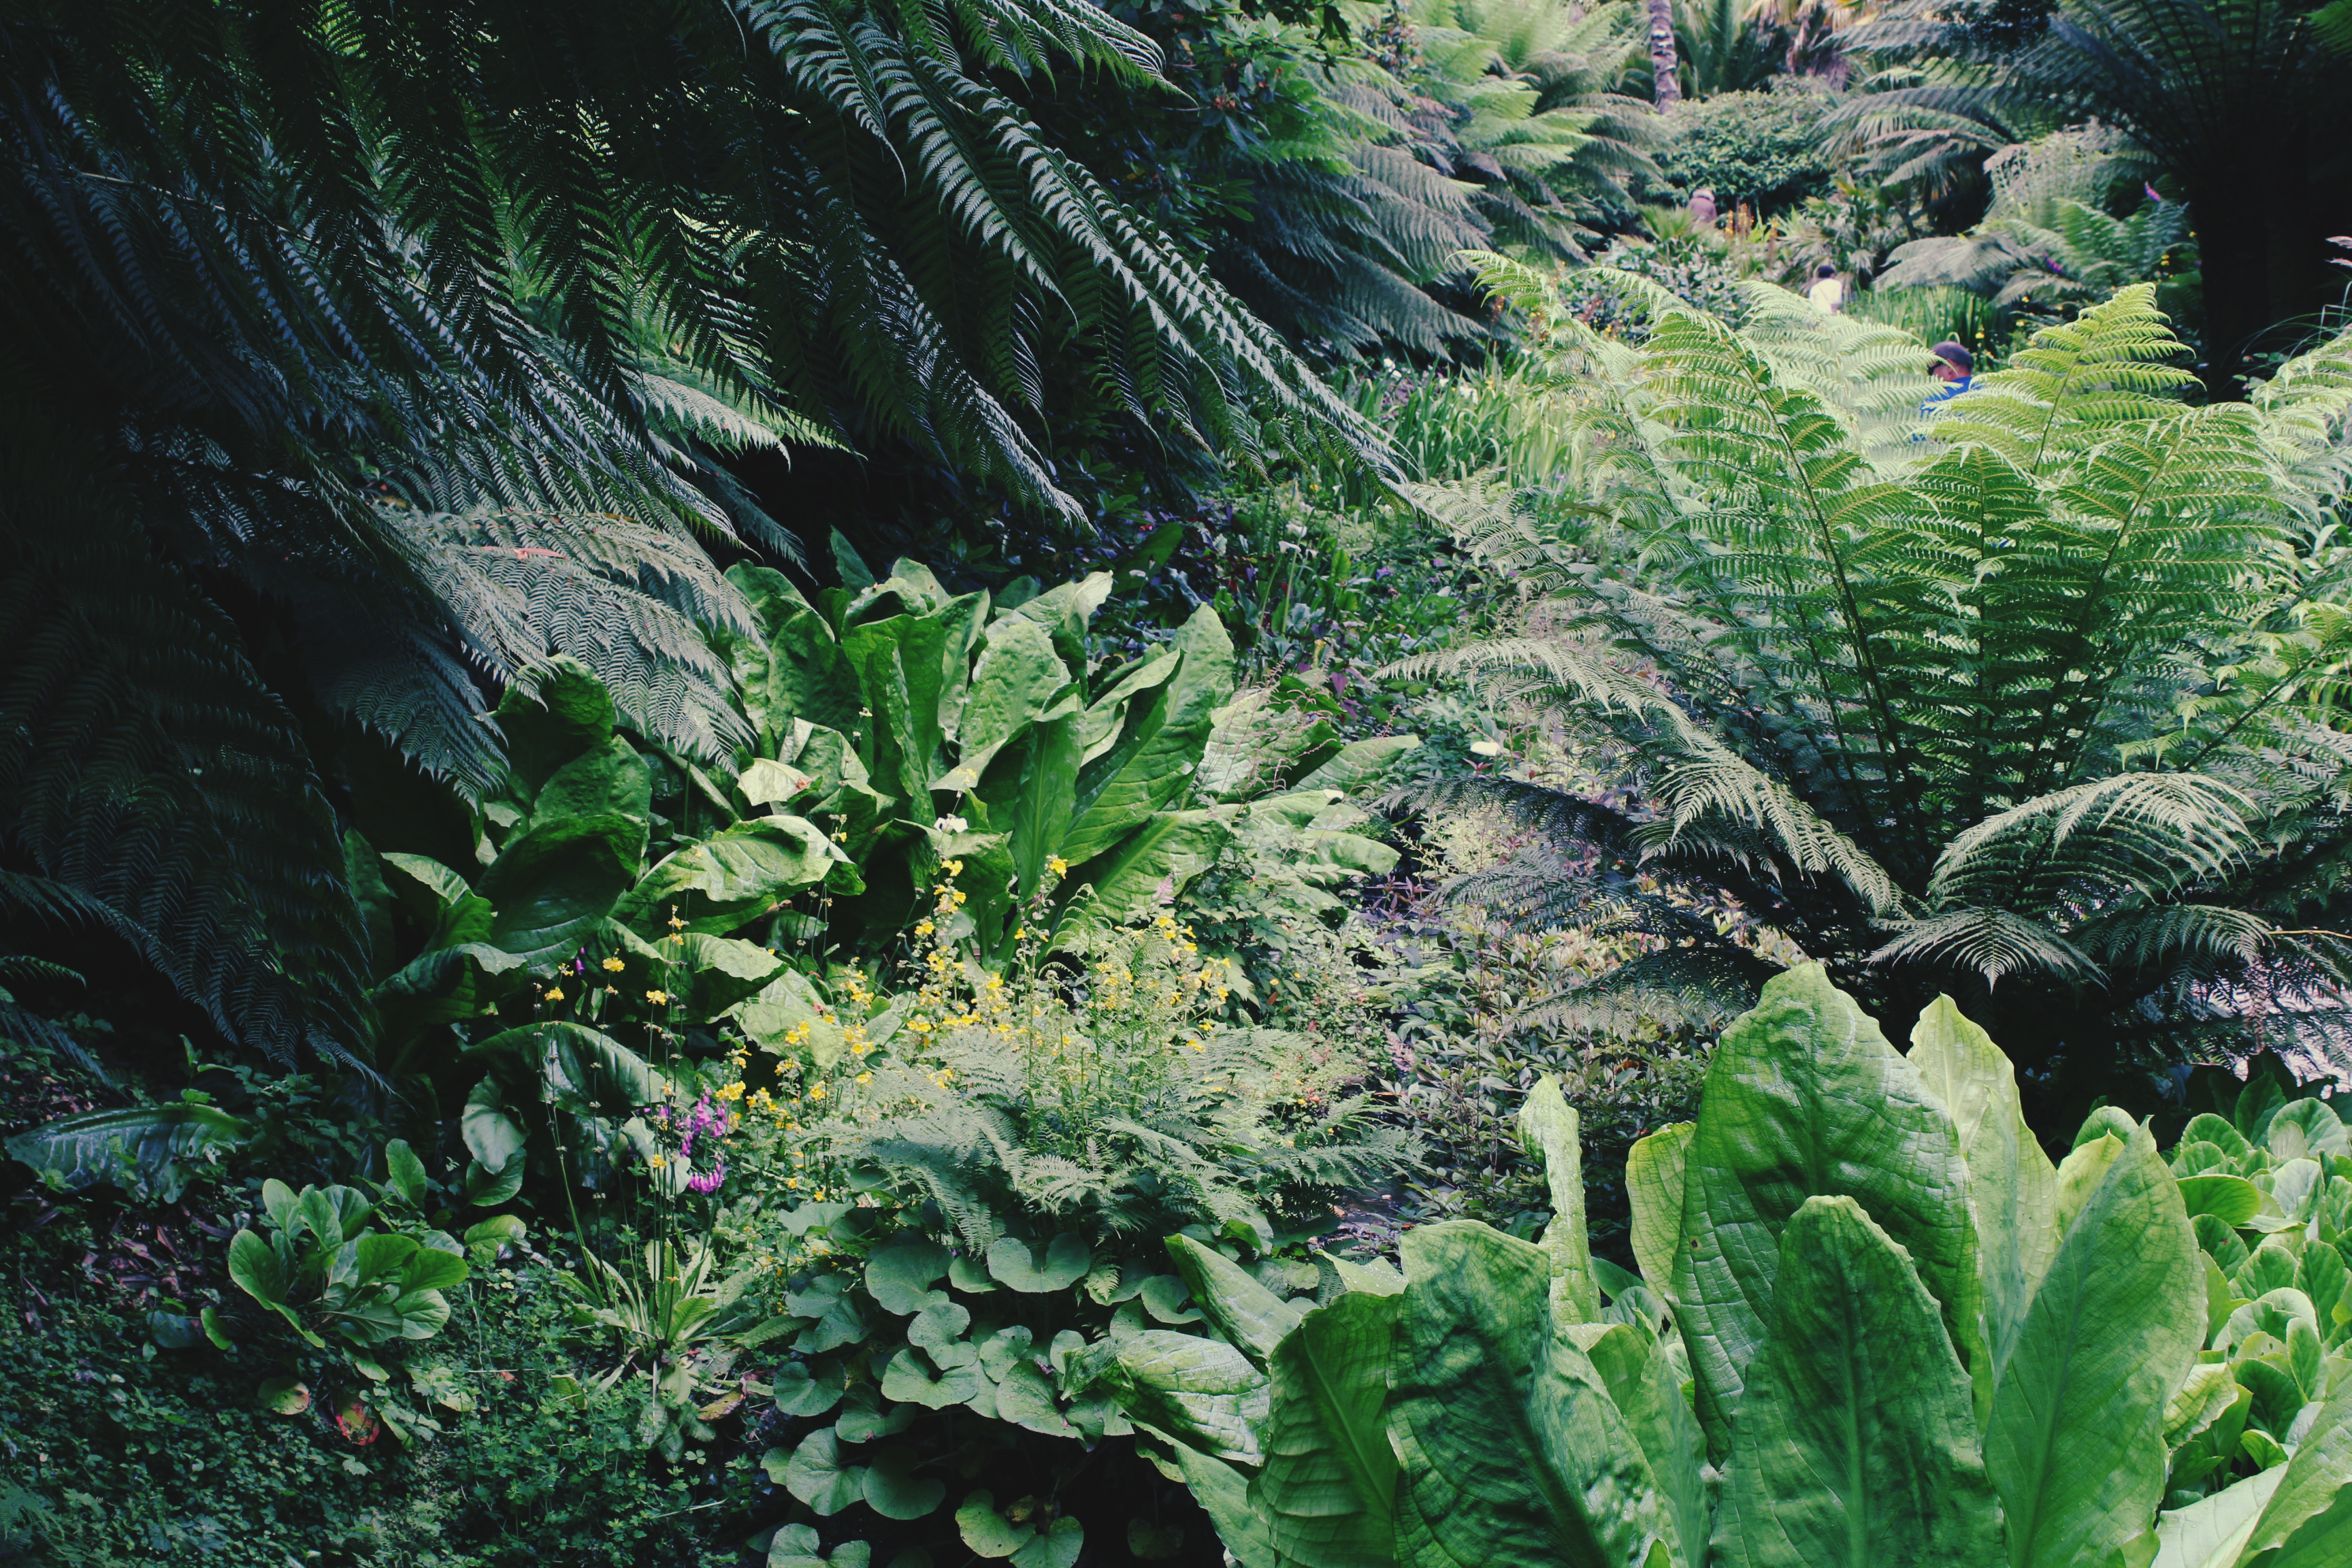 Lush ferns and tropical plants at Trebah Gardens, Cornwall